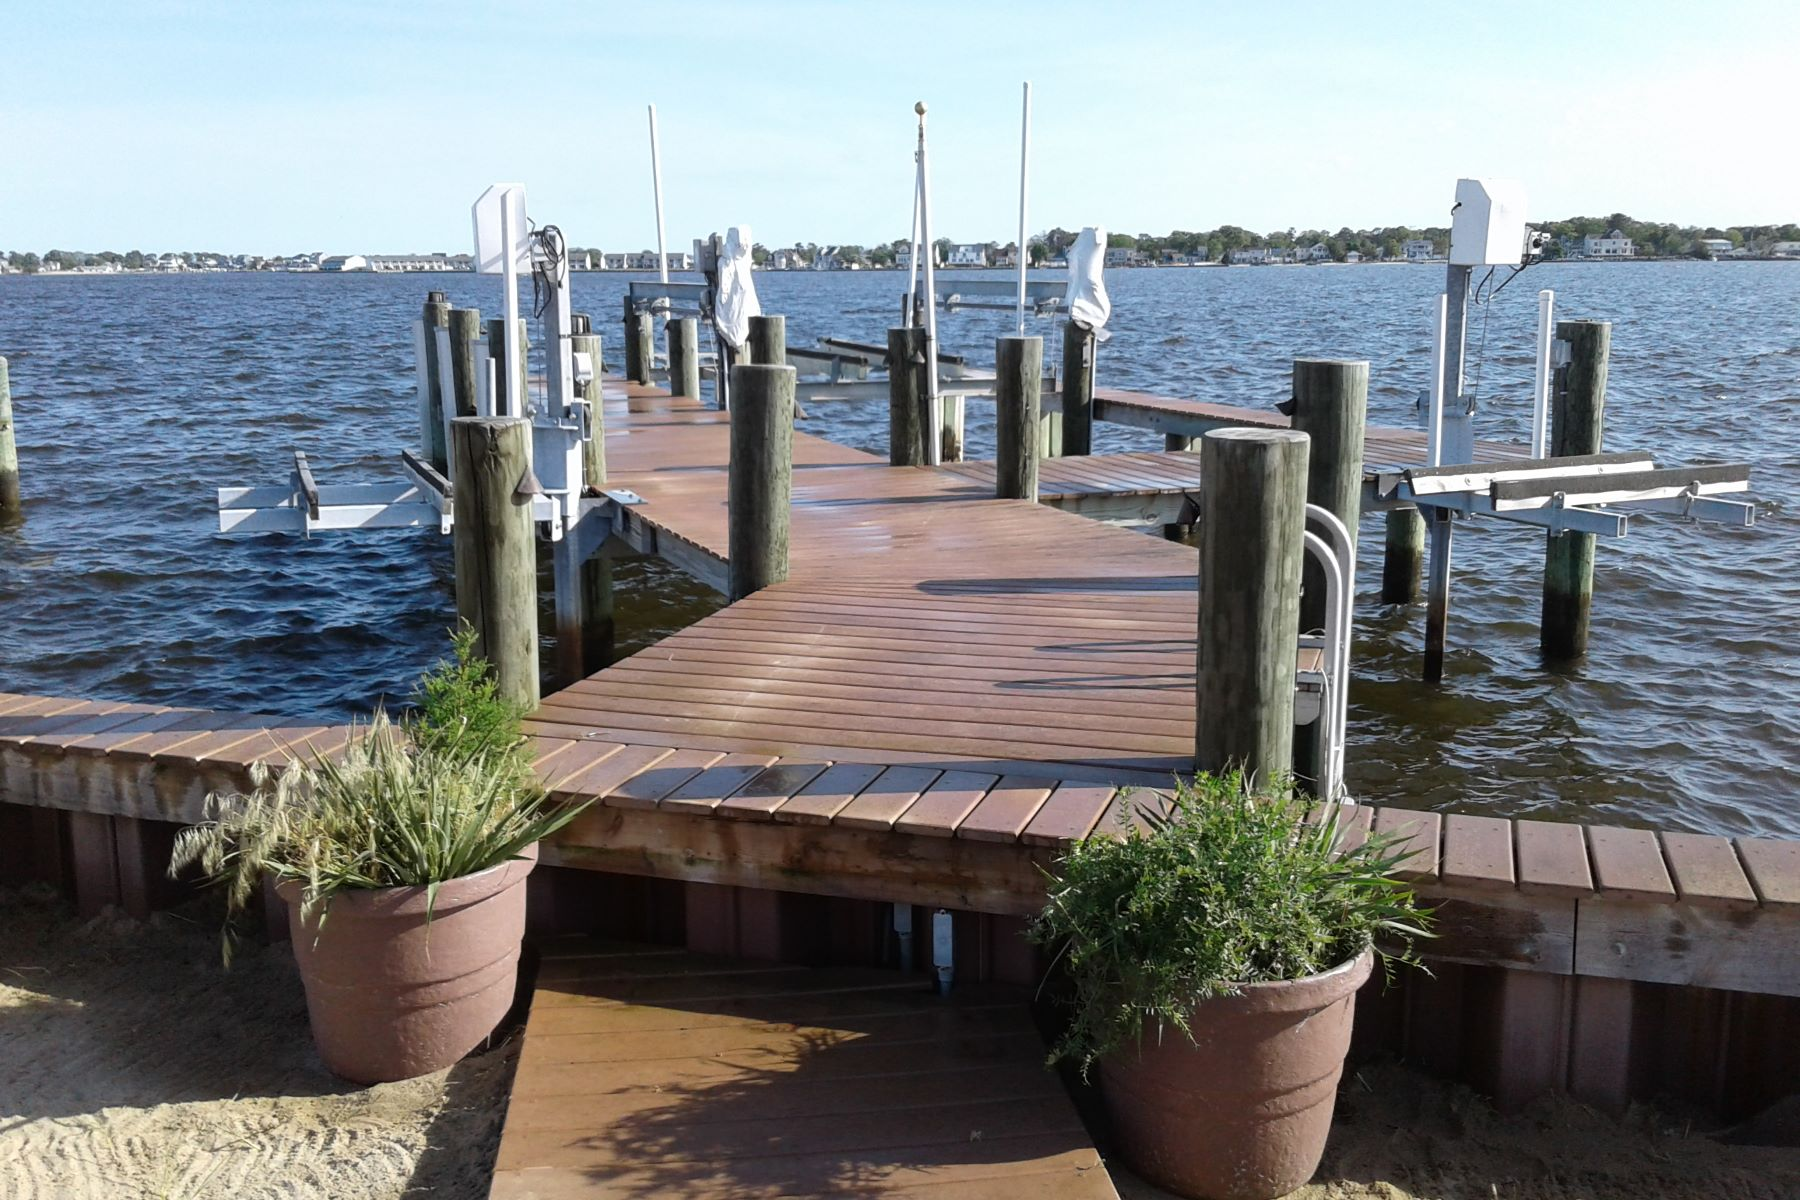 Water Front Lot in Cherry Quay 36 Captains Drive Brick, New Jersey 08723 United States